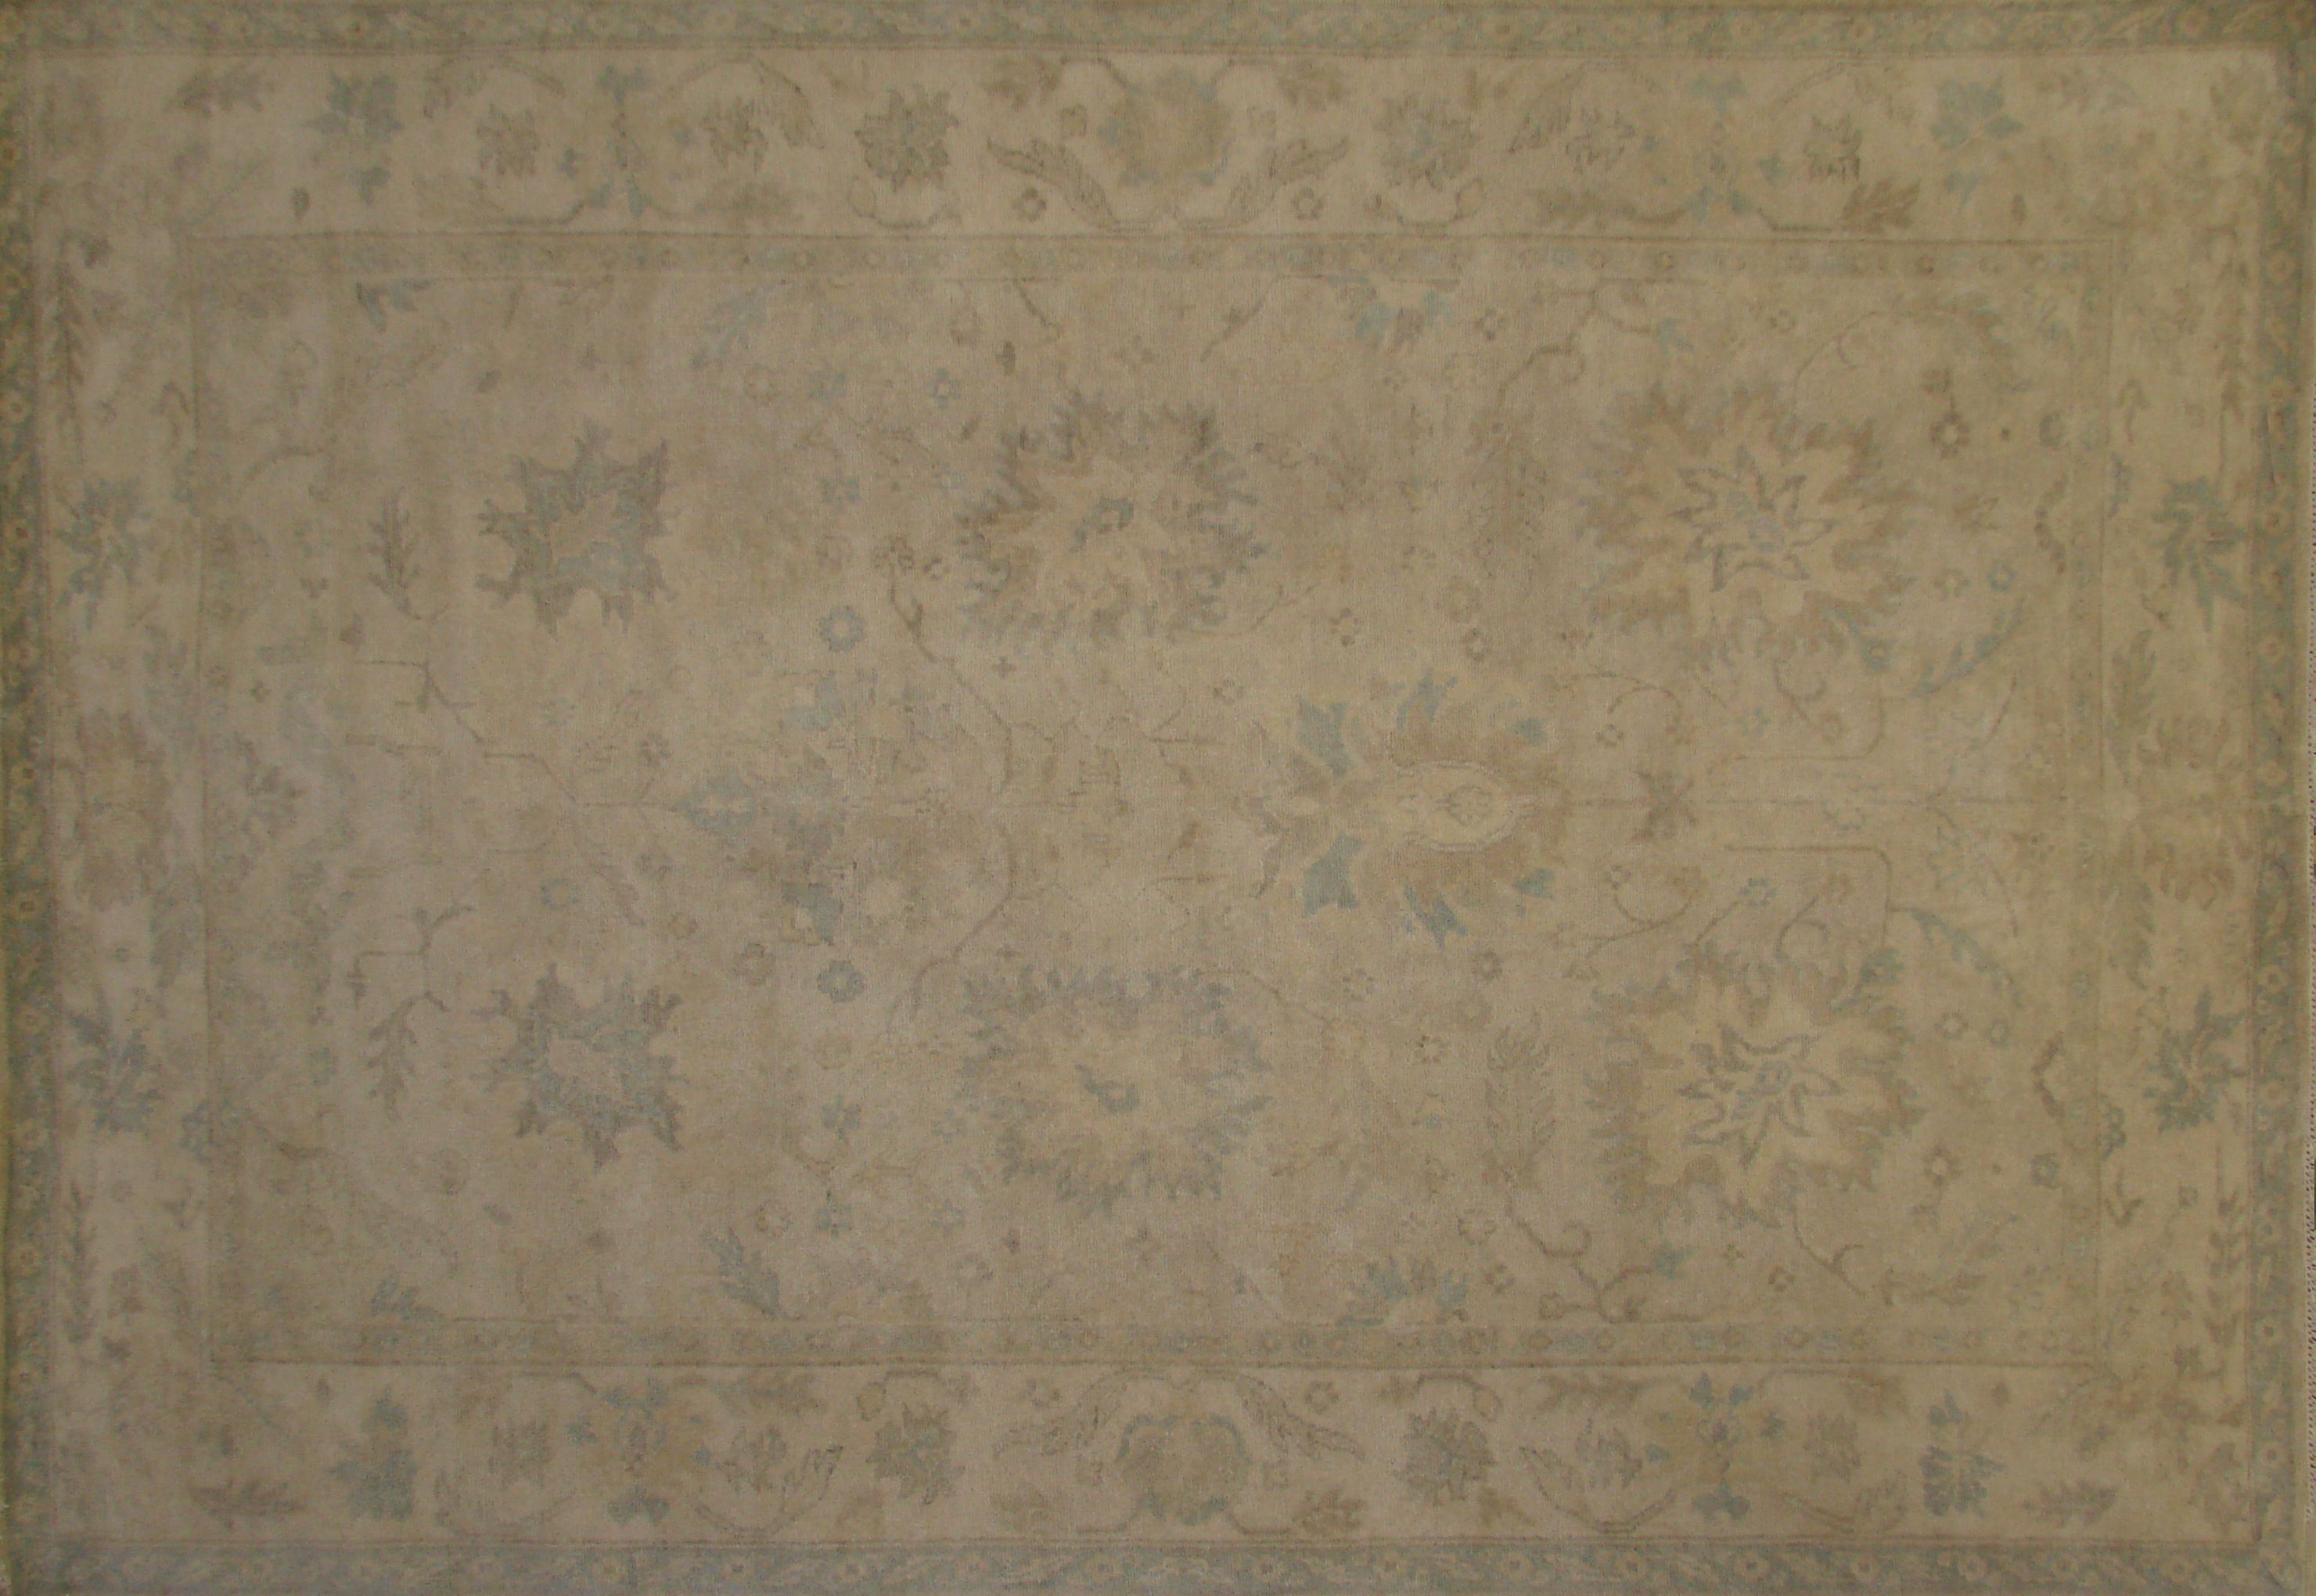 6x9 Oushak Hand Knotted Wool Area Rug - MR020174